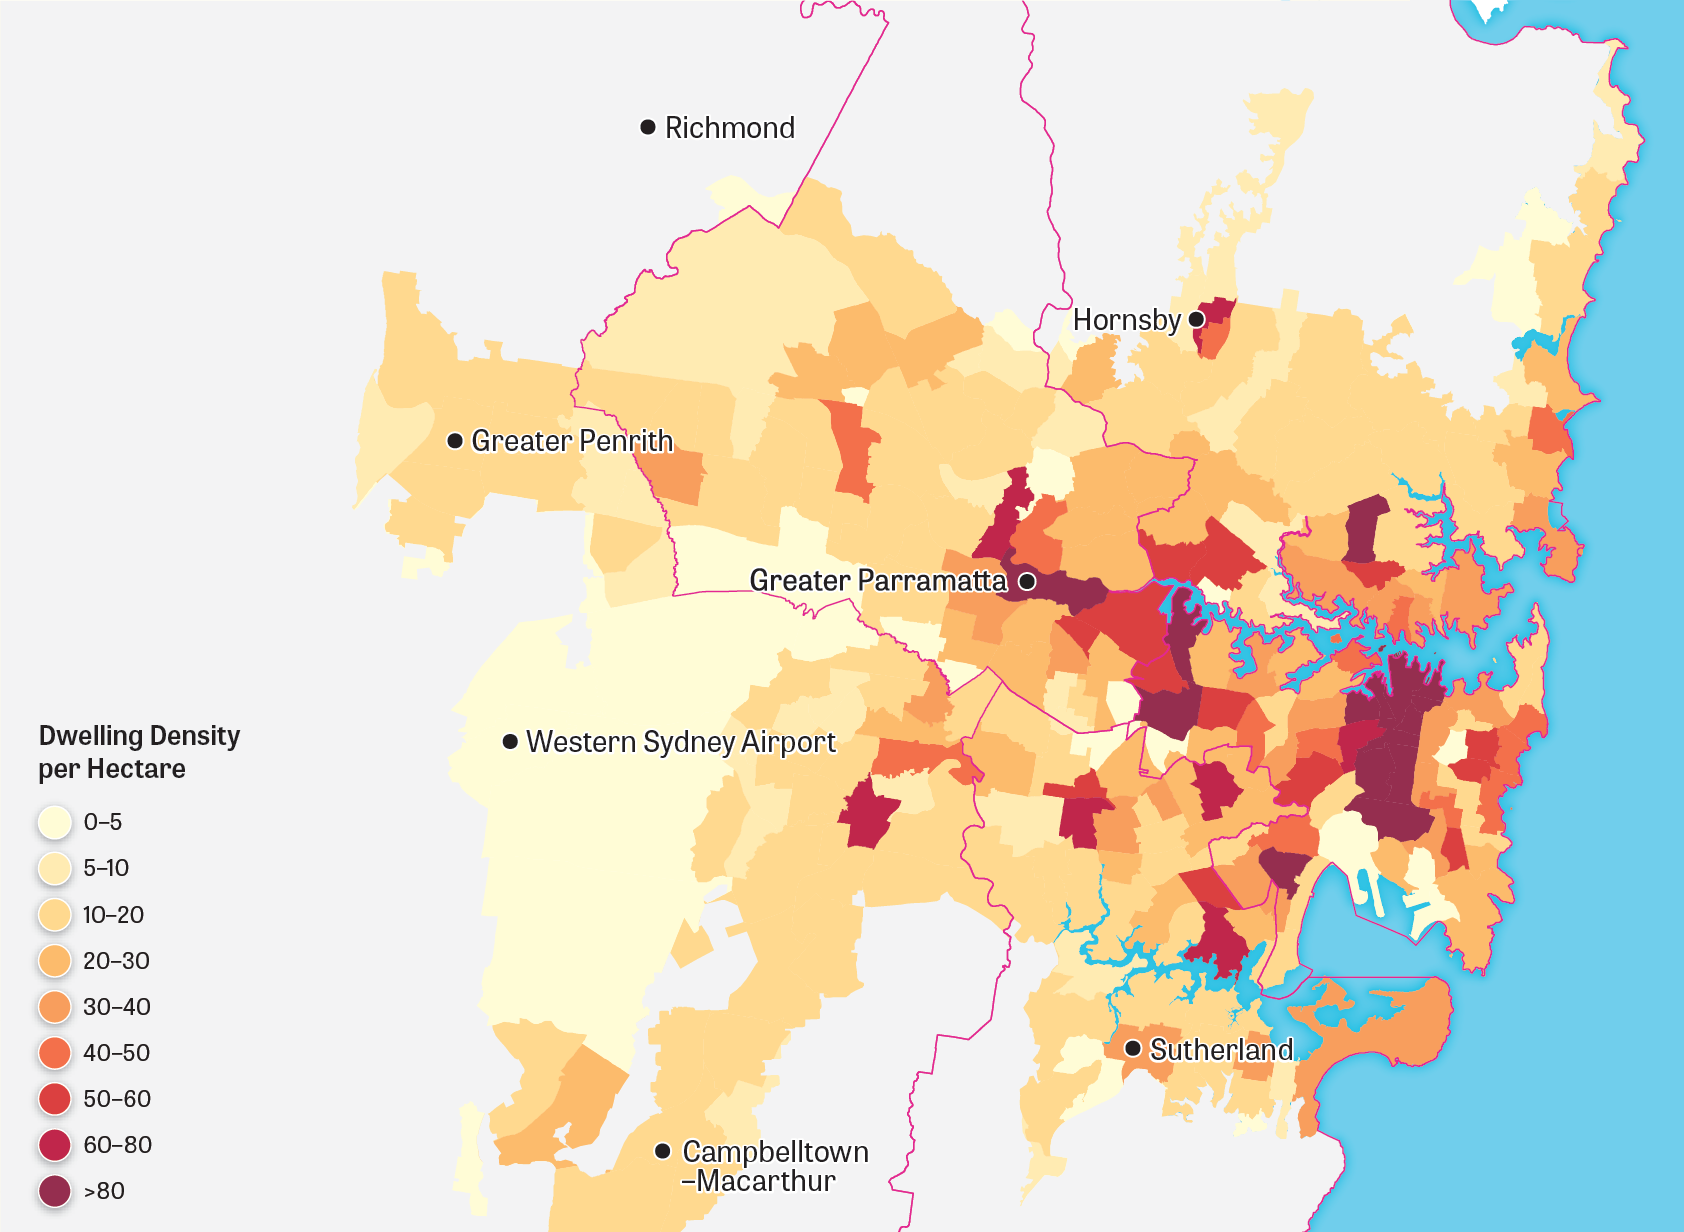 Map showing Greater Sydney's urban landform for 2036.